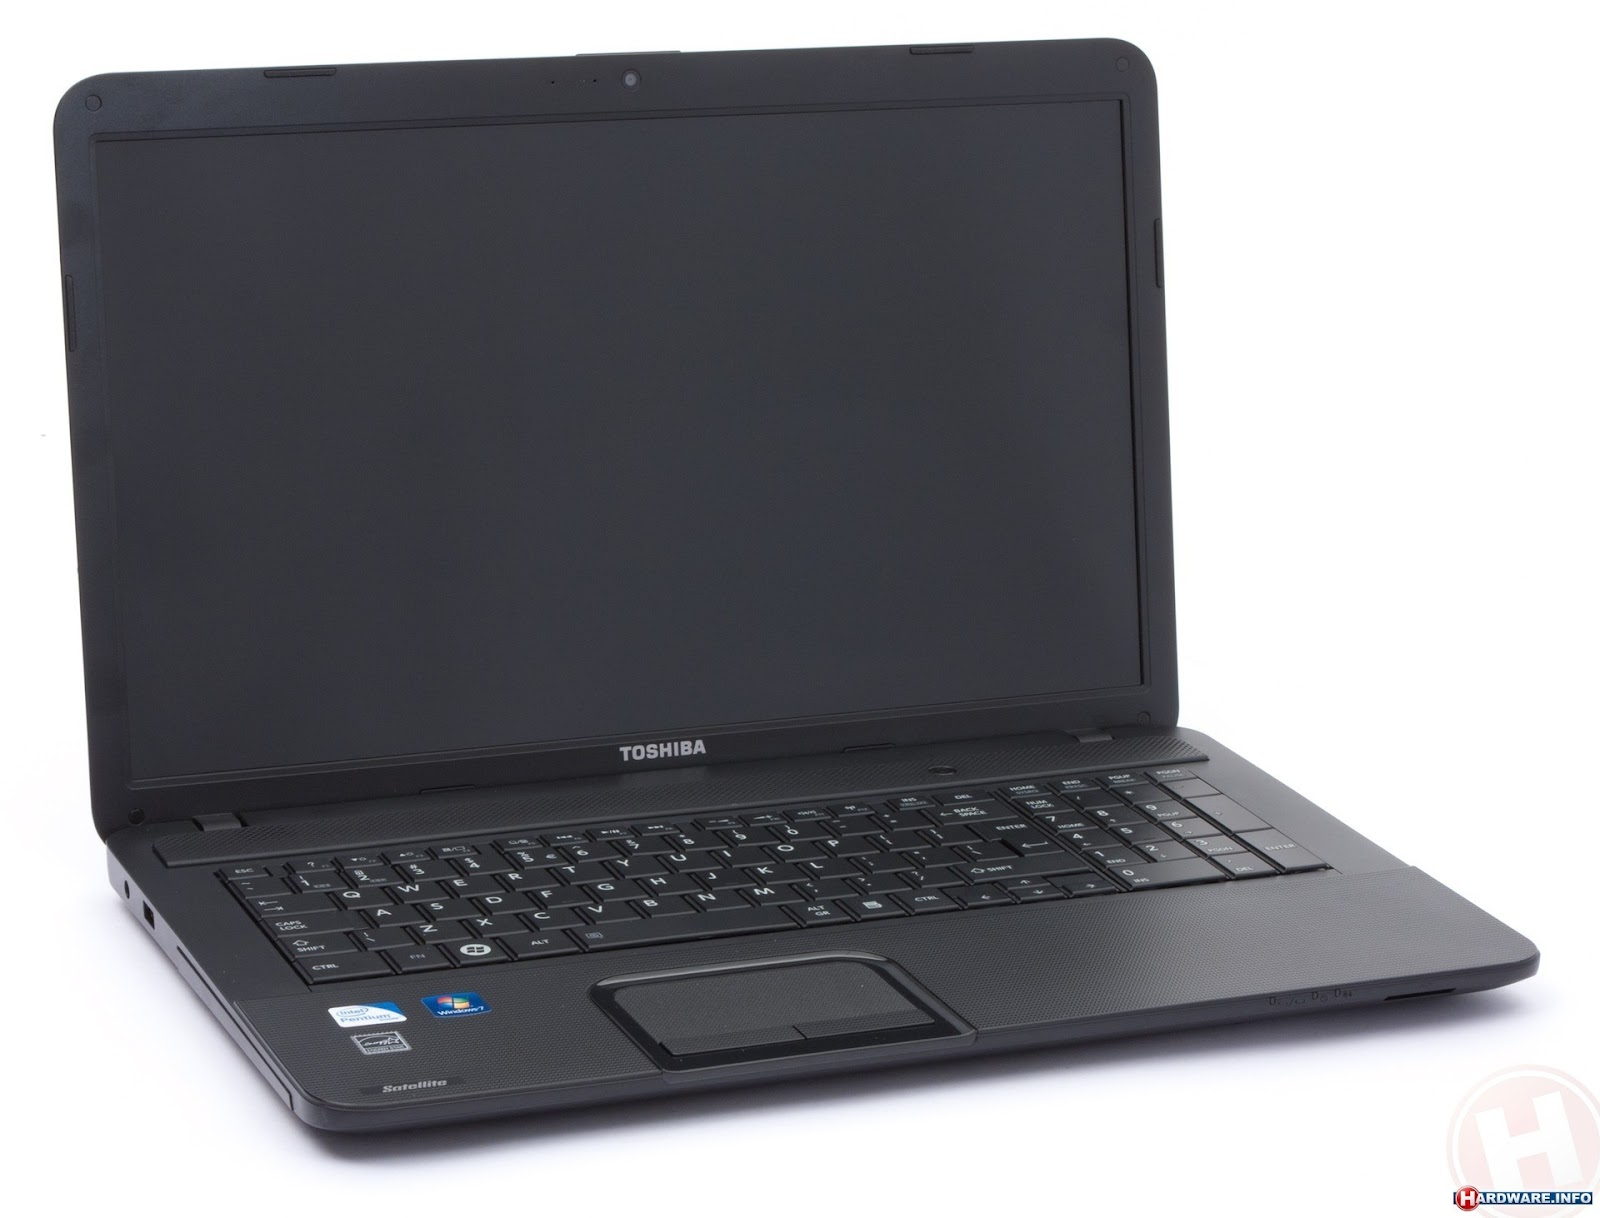 Toshiba satellite c660 drivers download for windows 10, 8. 1, 7.